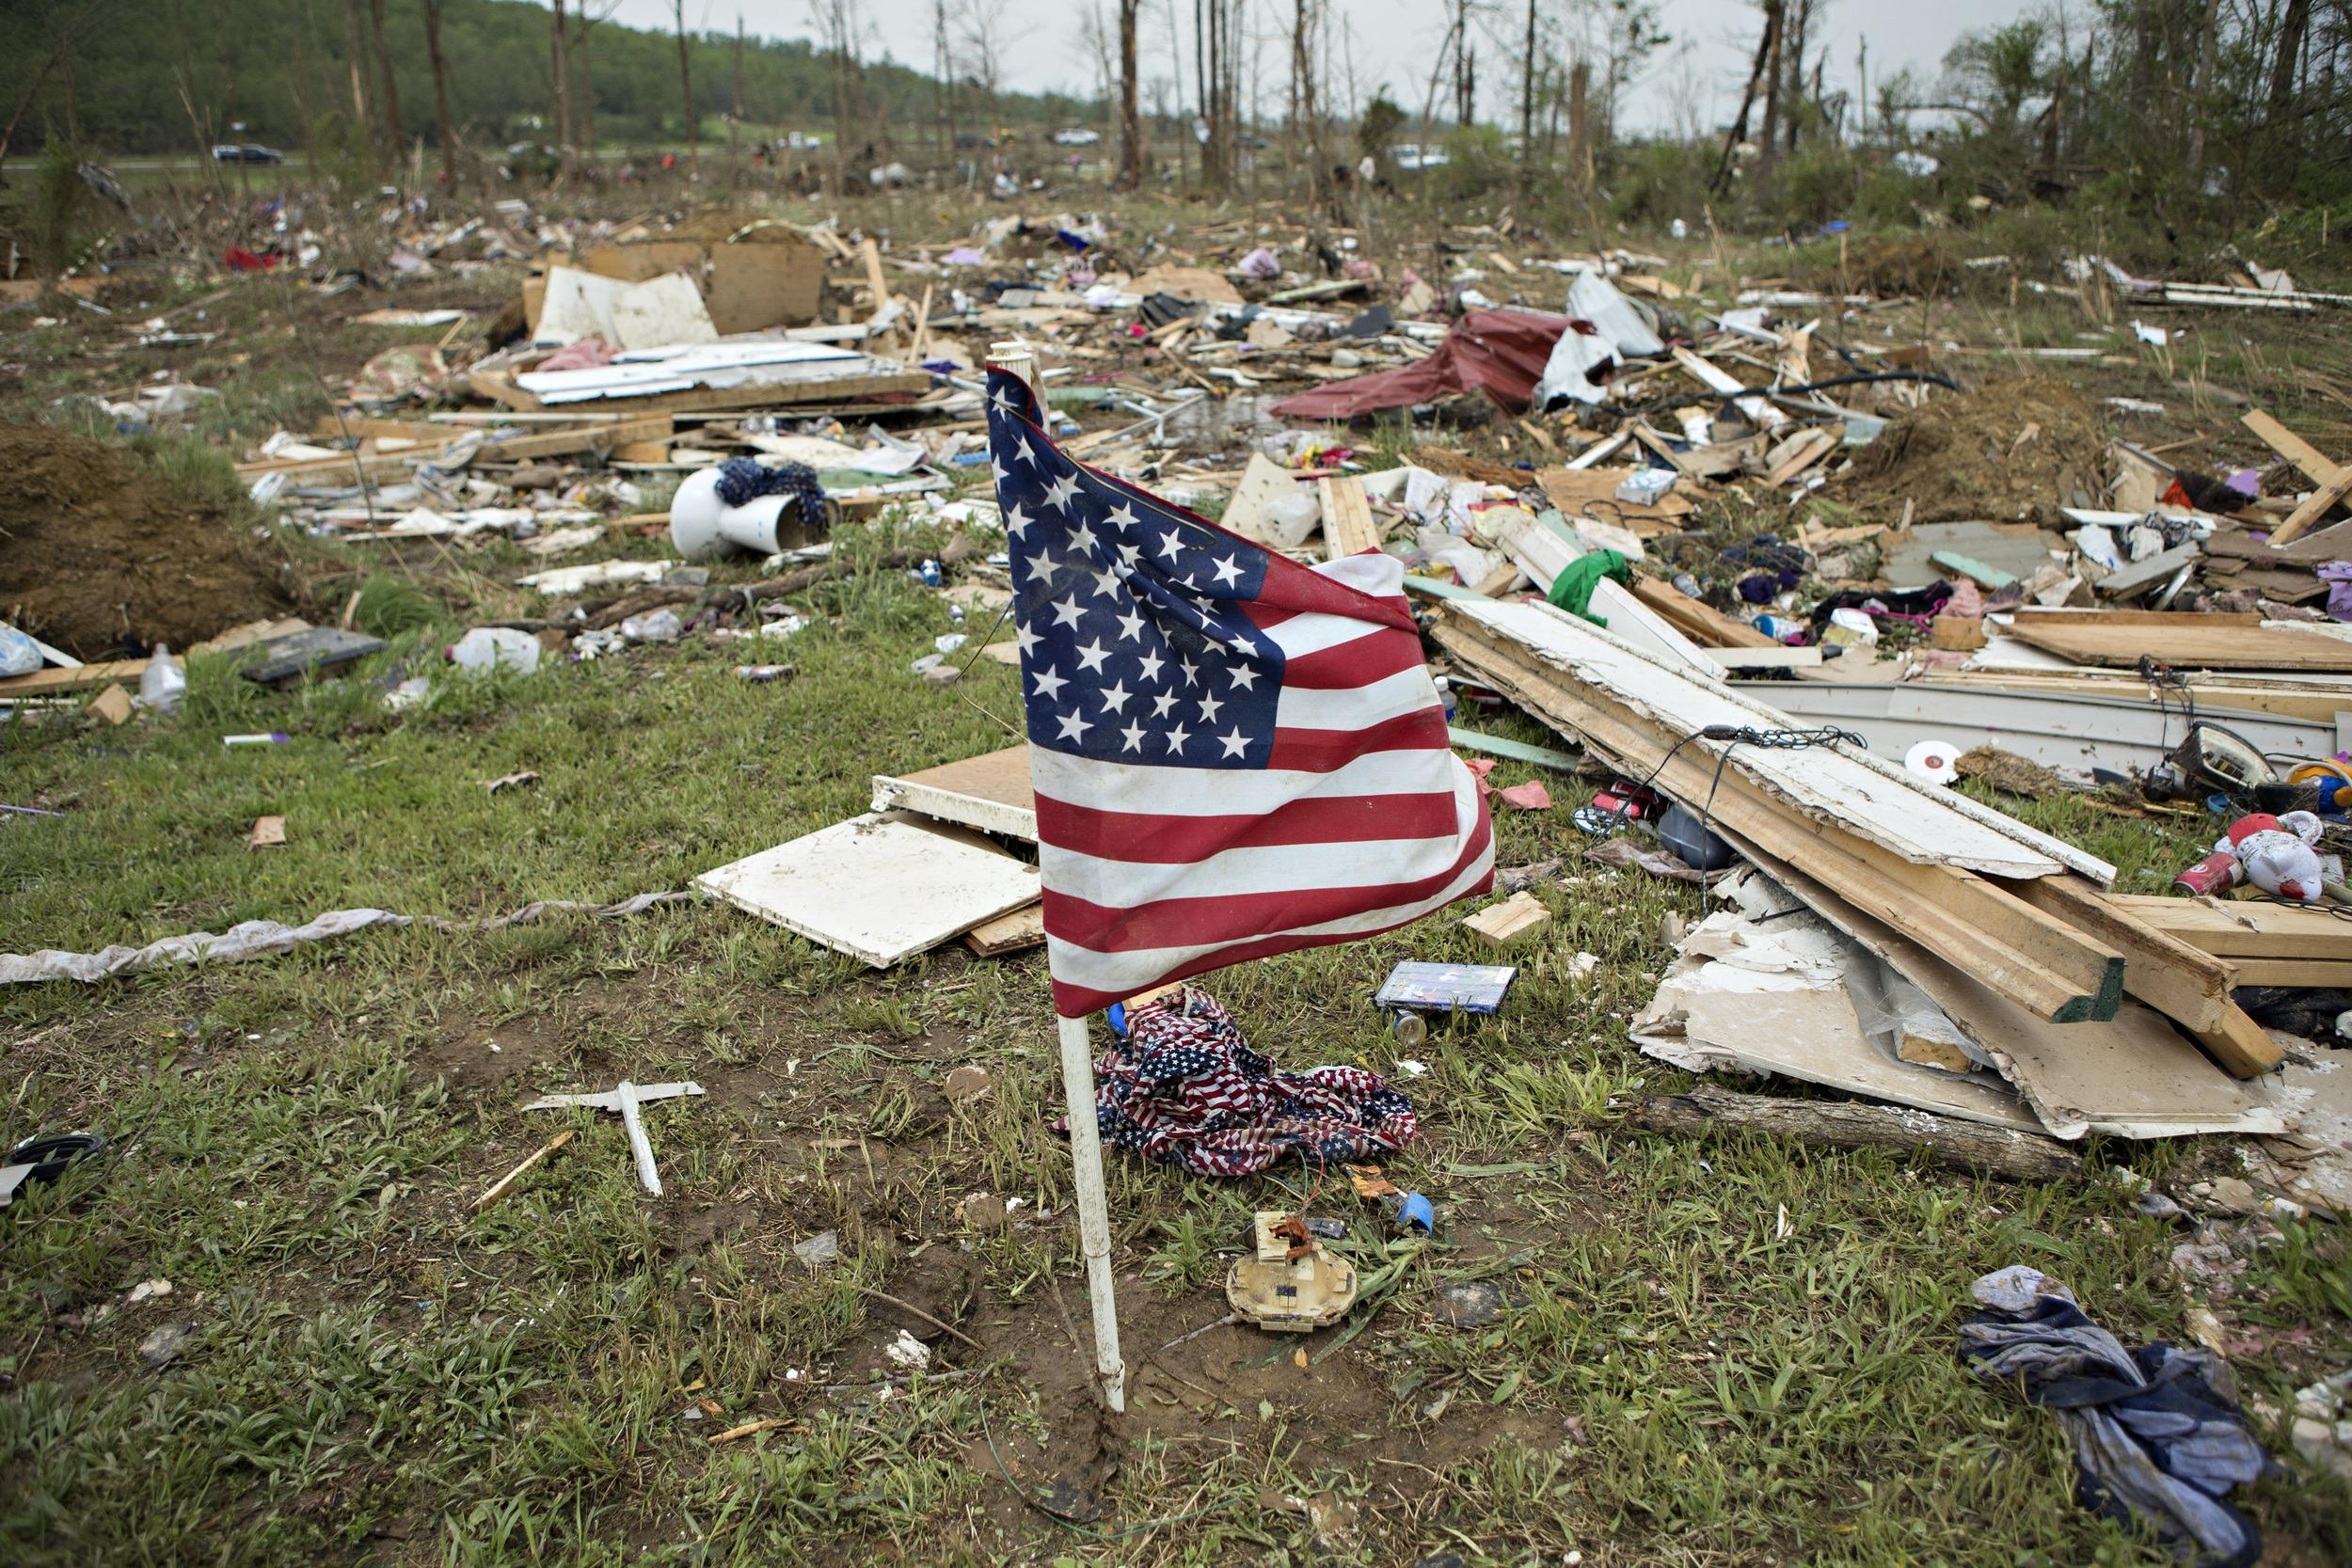 Image: Widespread Damage And Casualties After Tornadoes Rip Through Arkansas